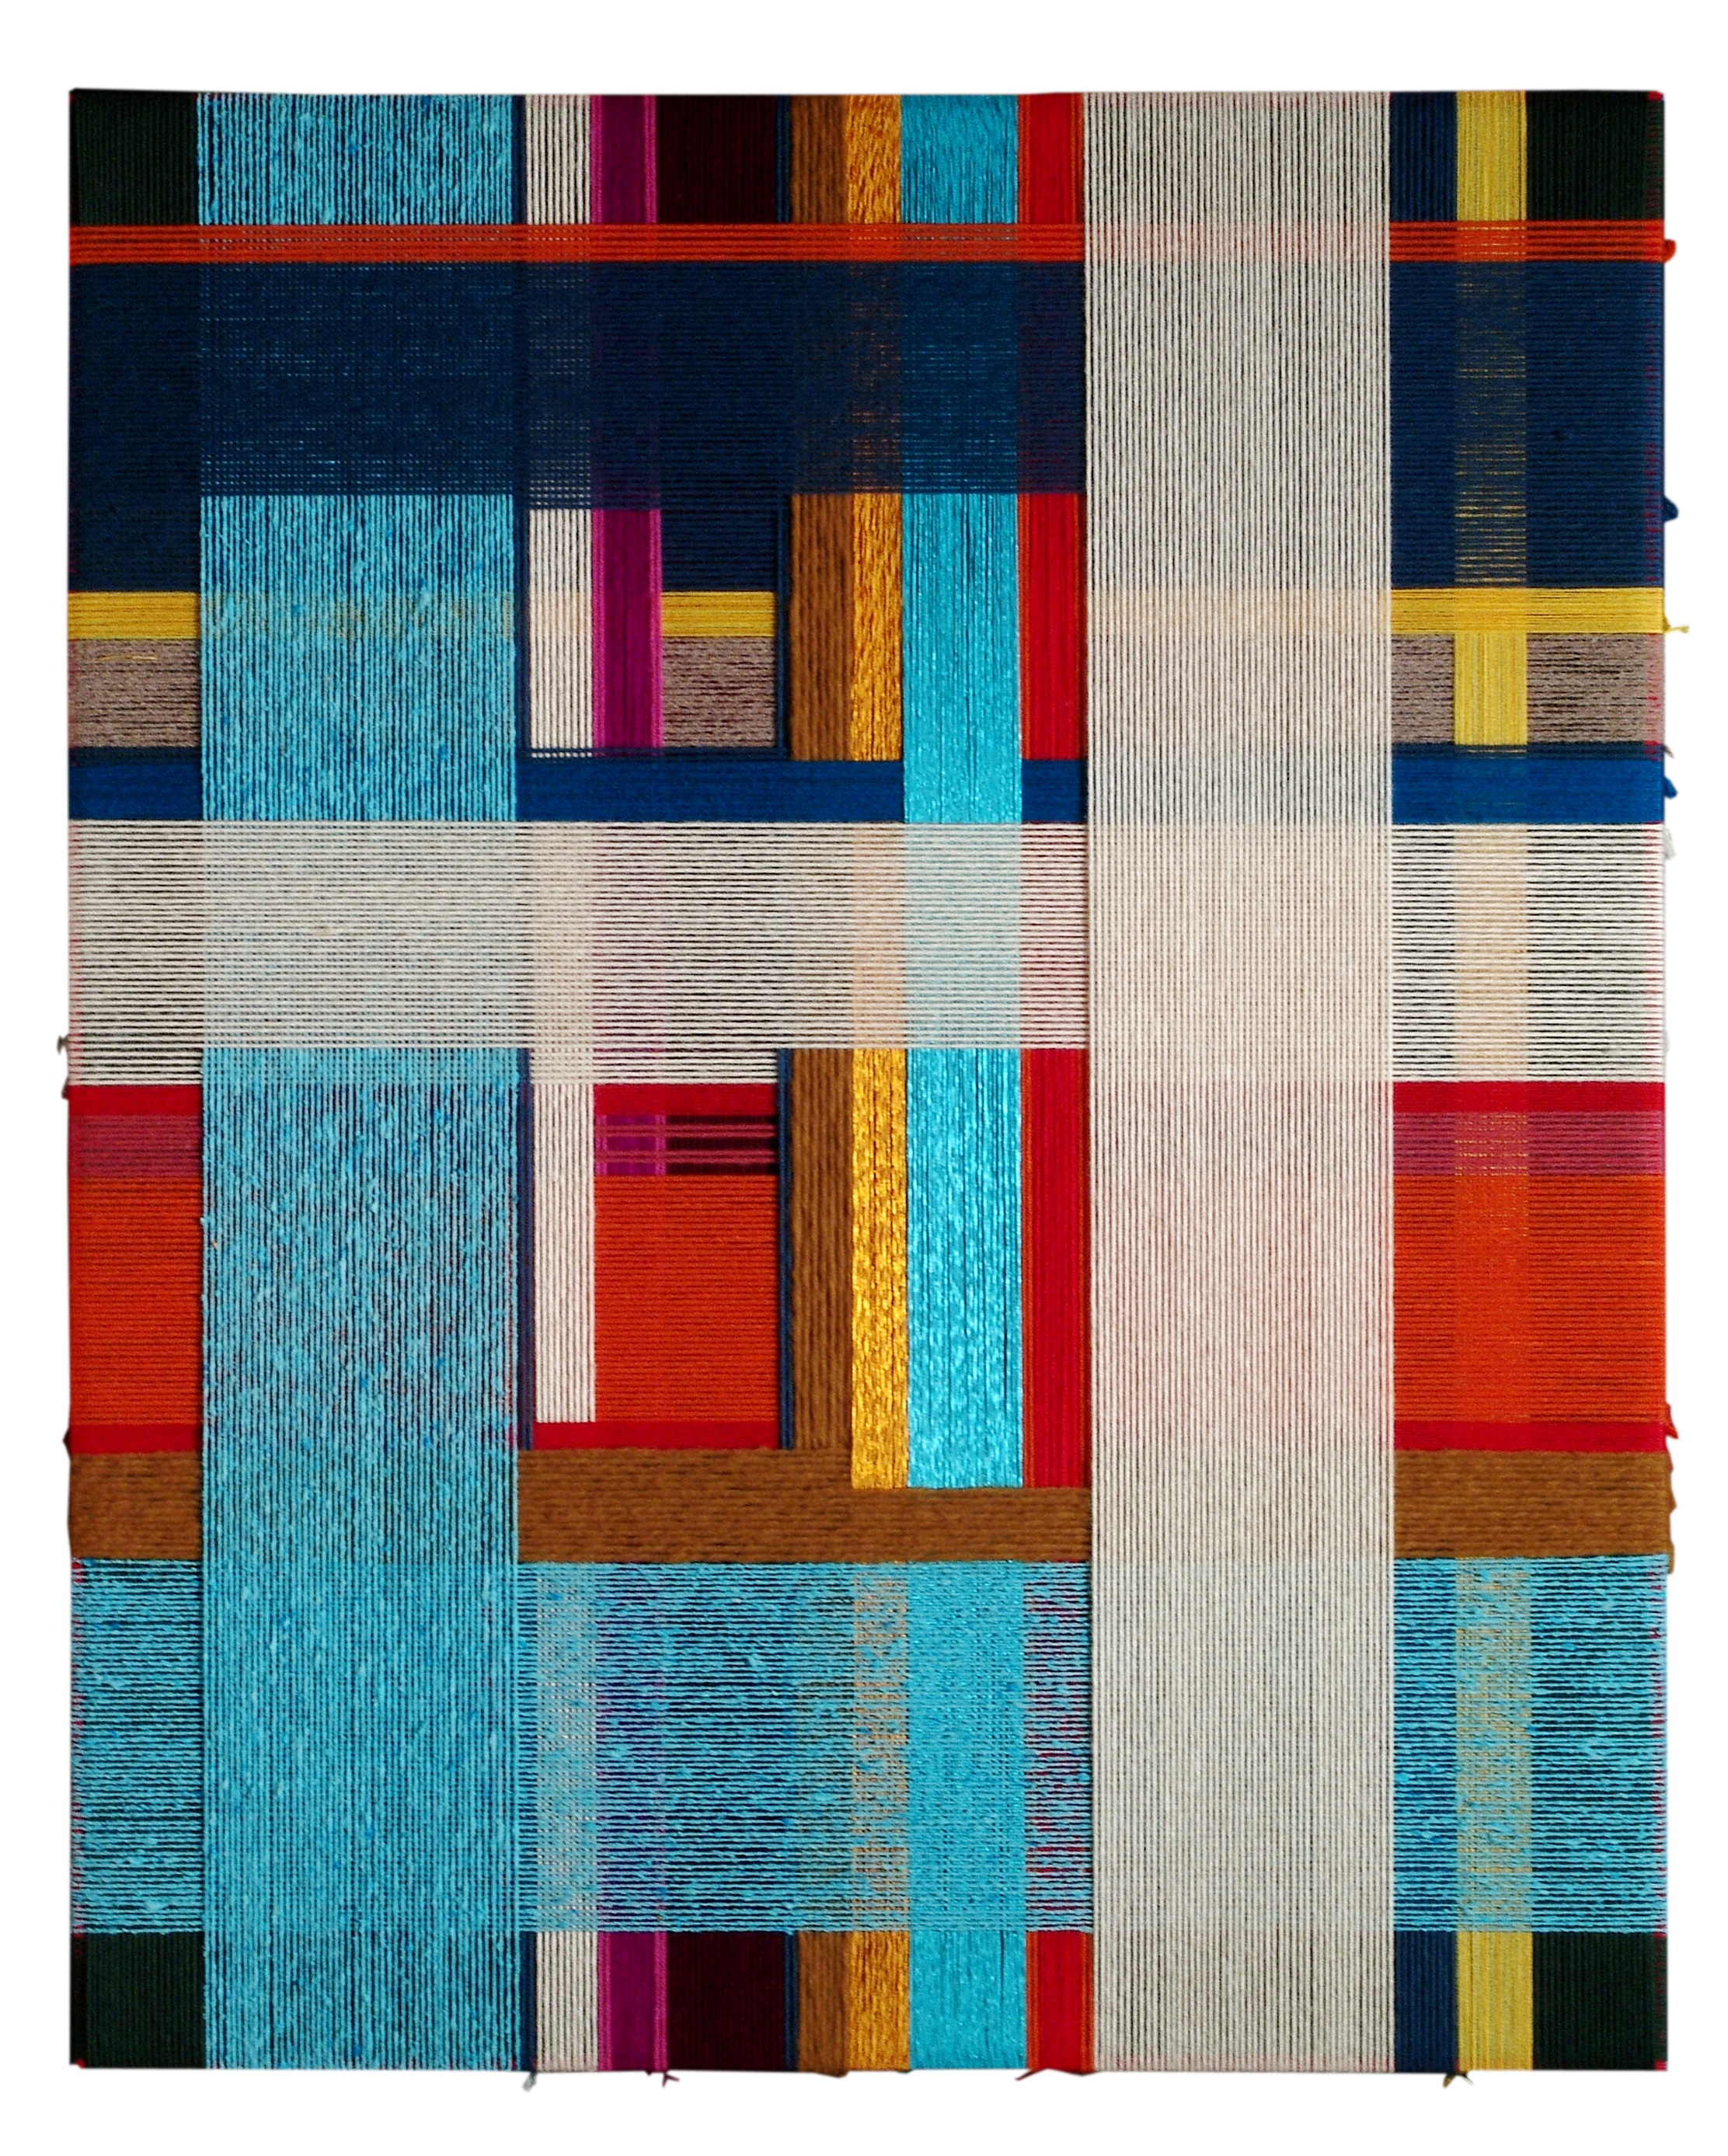 bue al macello  2007  wool, cotton  39 x 31 in.